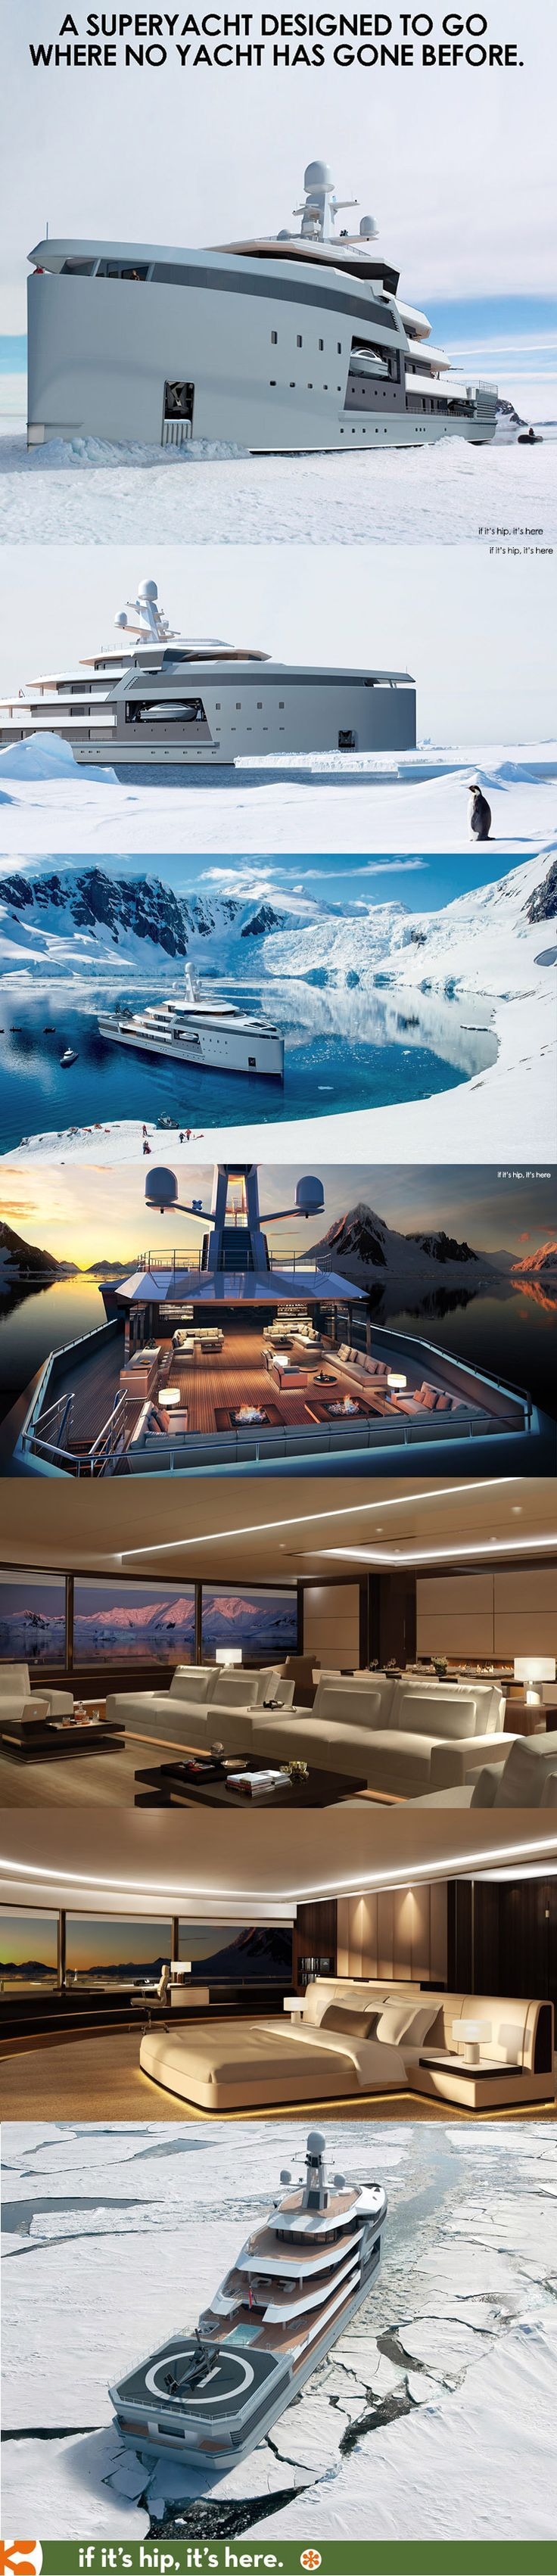 soulmate24.com Designed to travel anywhere in the world, even through the polar regions, the Sea Explorer range are expedition yachts with…